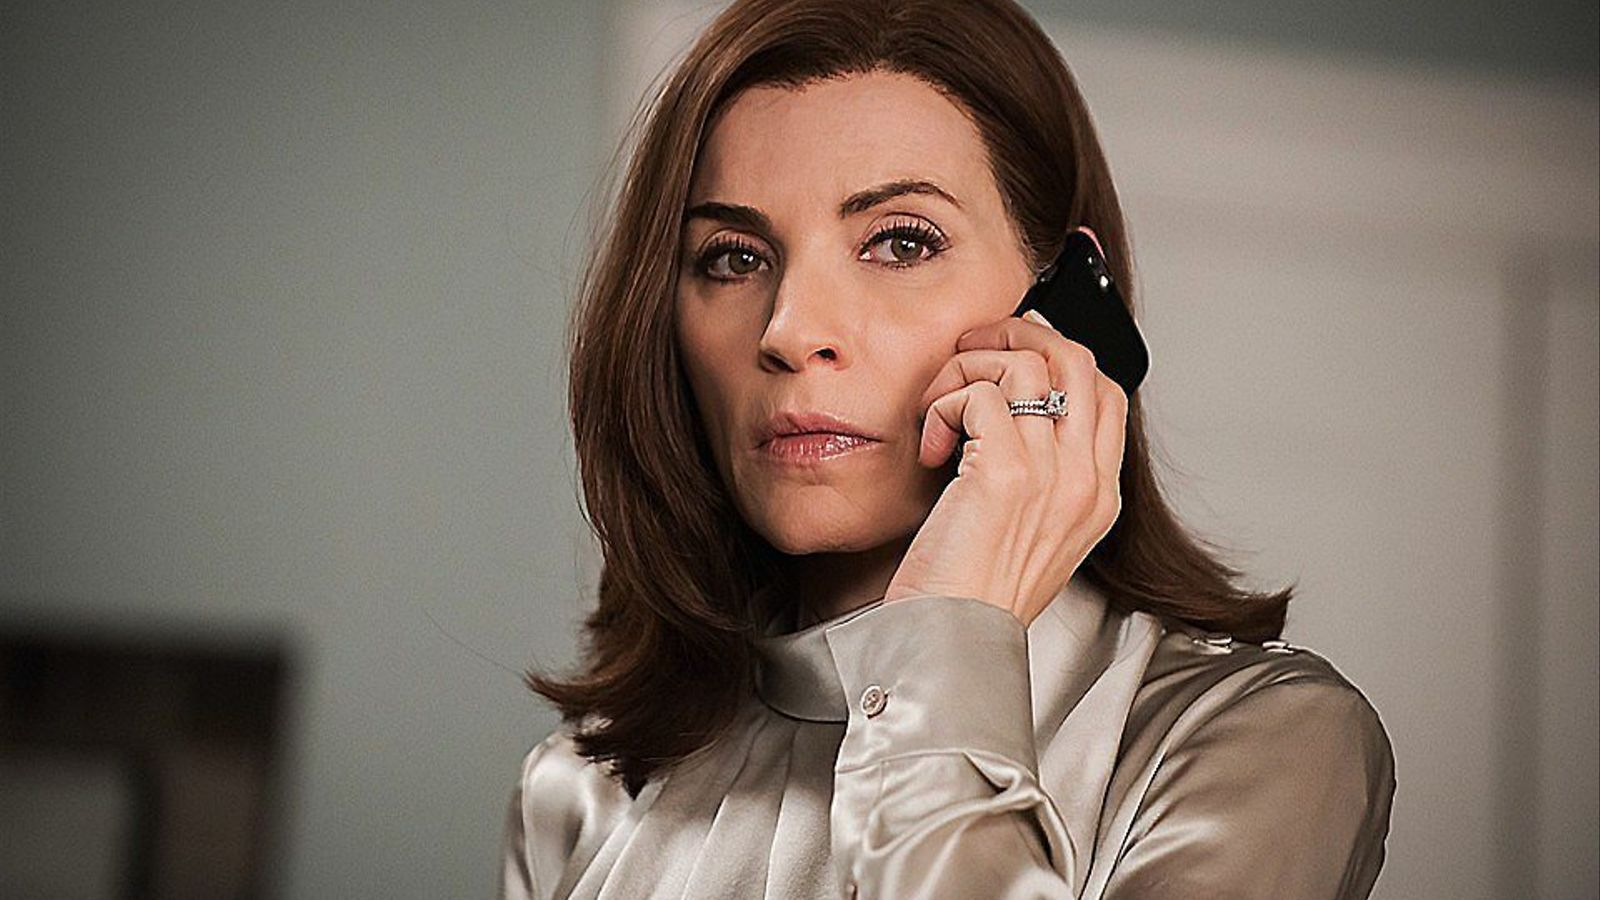 'The good wife' s'acaba avui i Margulies diu que el final no deixarà indiferent